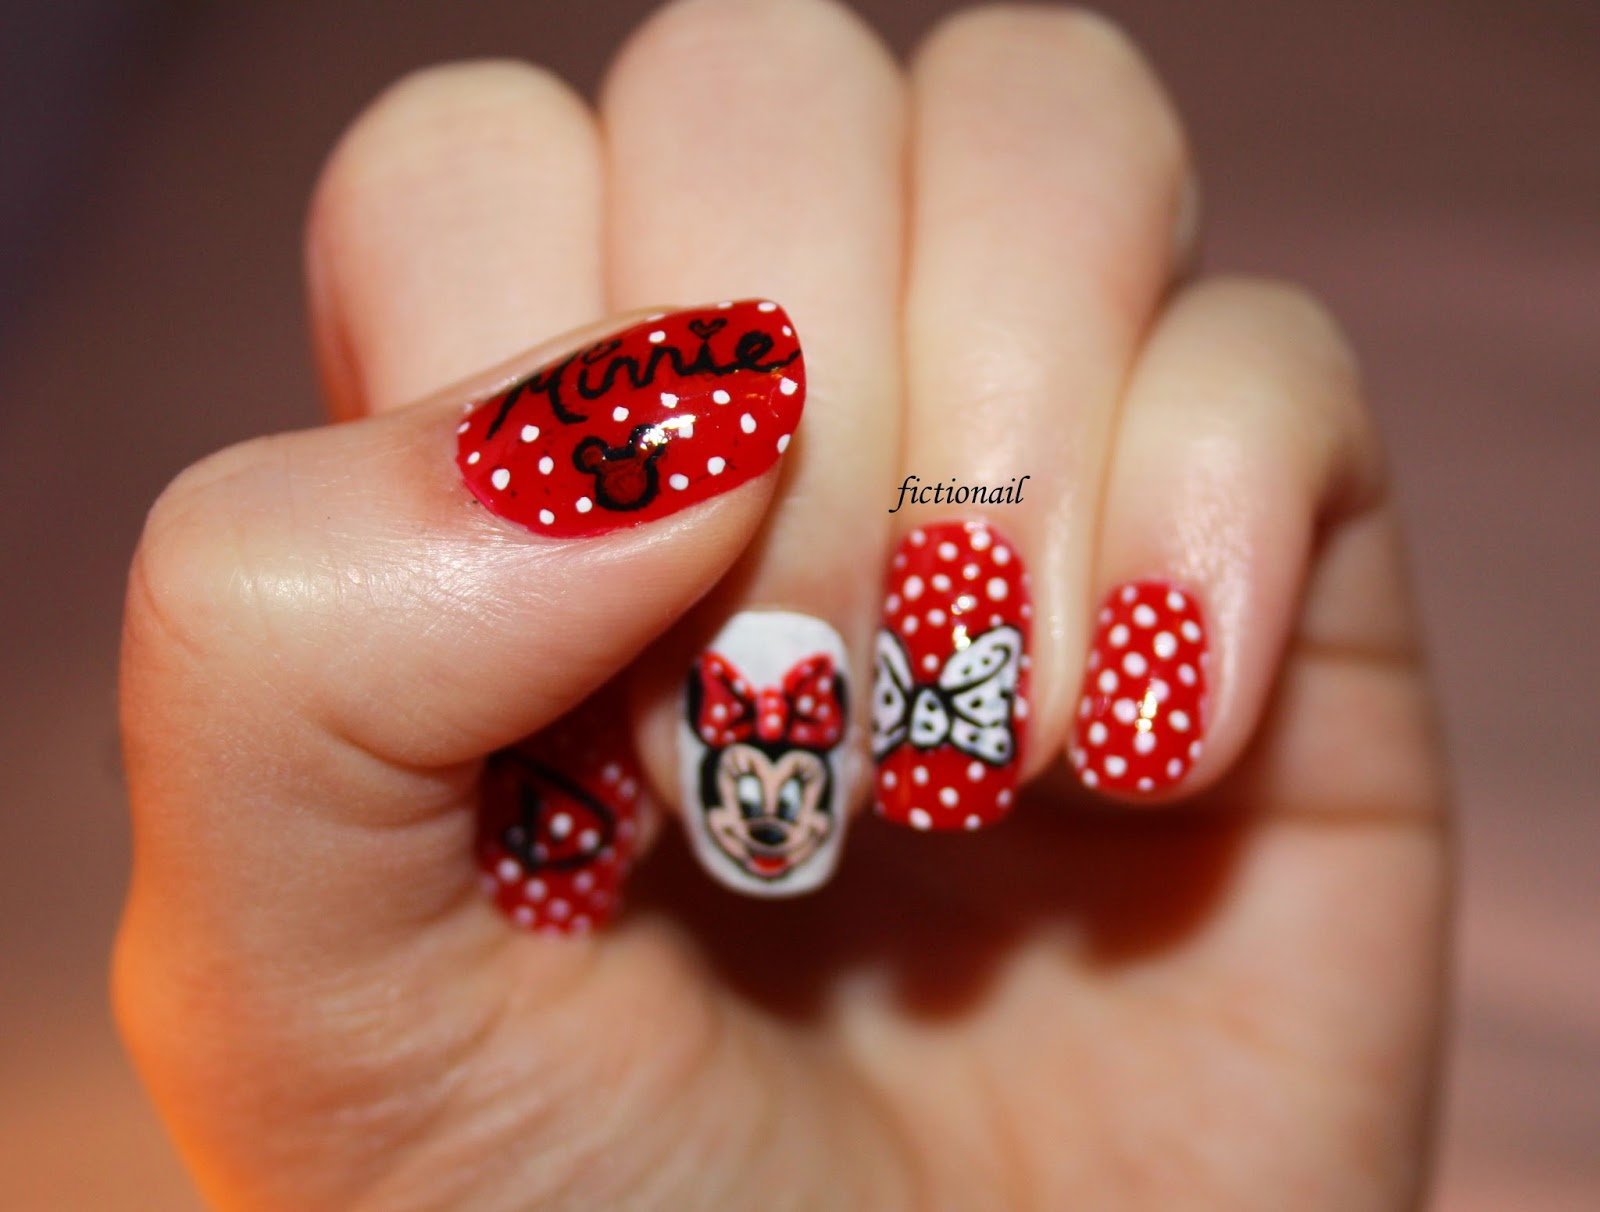 Minnie mouse nails fictionail nail art prinsesfo Image collections